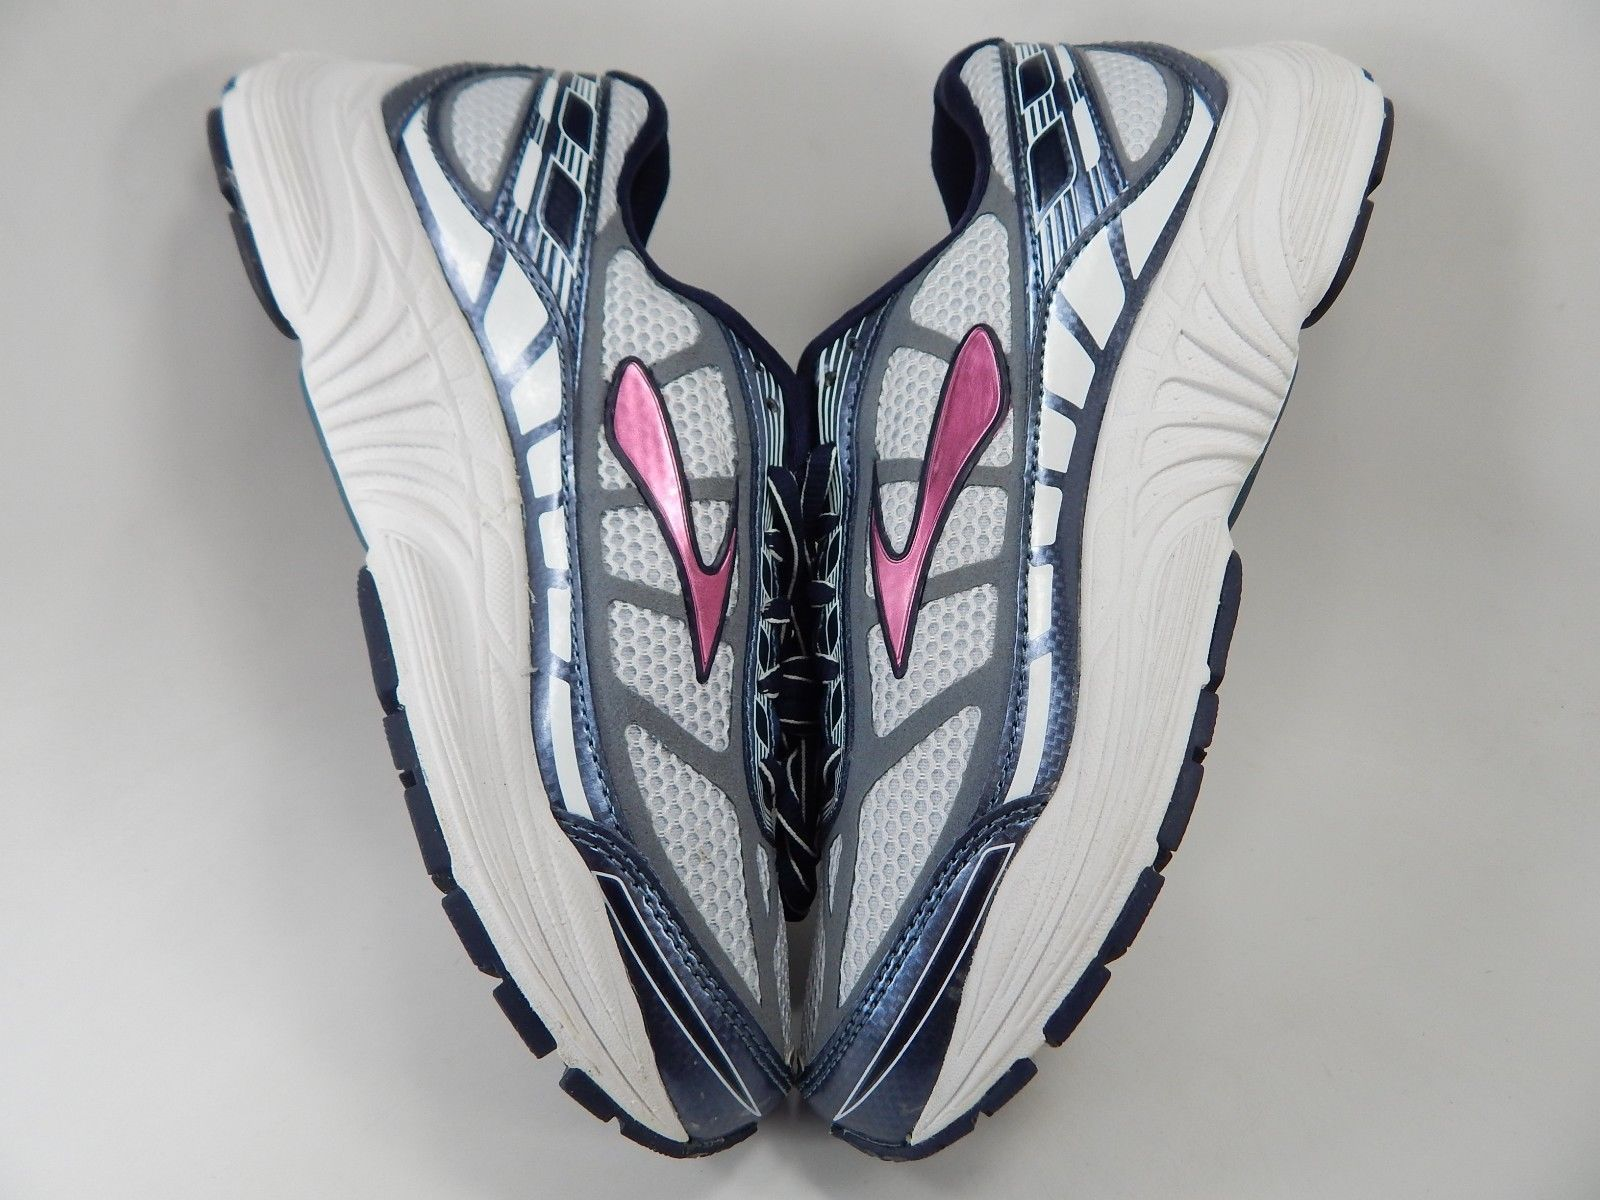 MISMATCH Brooks Dyad 8 Size 6 M (B) Left & 7.5 M (B) Right Women's Running Shoes